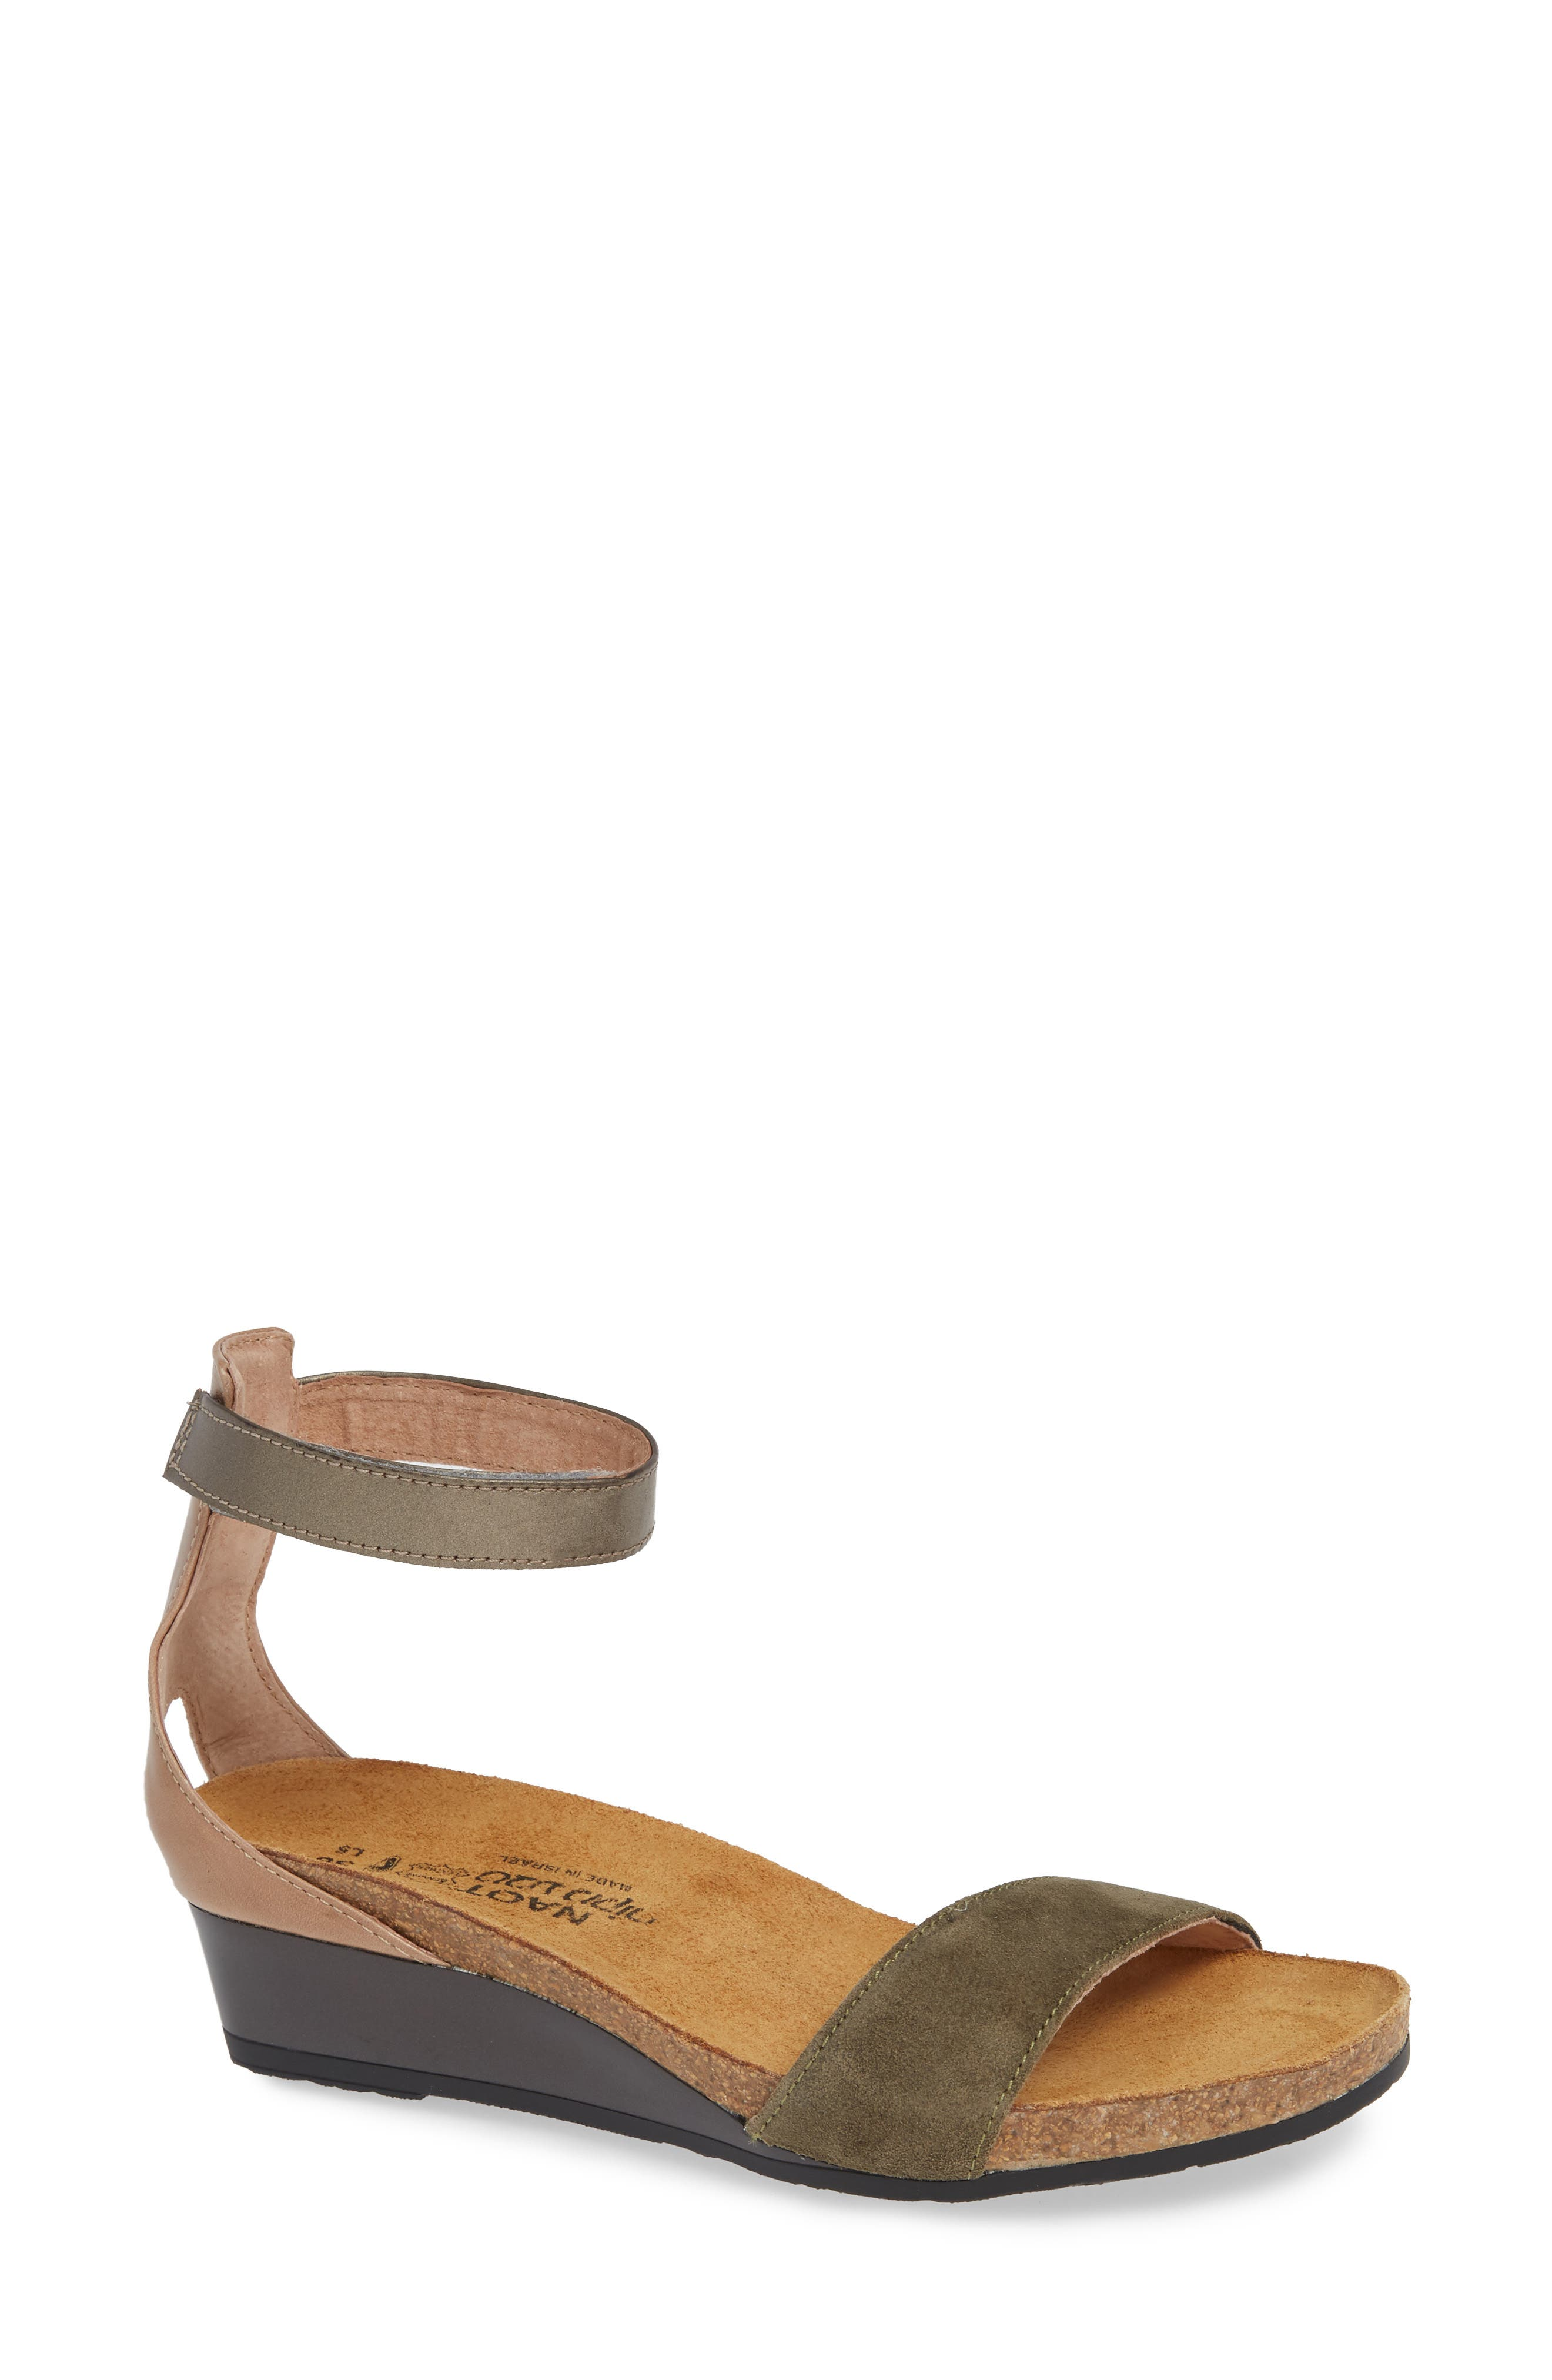 NAOT, 'Pixie' Sandal, Main thumbnail 1, color, OLIVE SUEDE/ PEWTER LEATHER